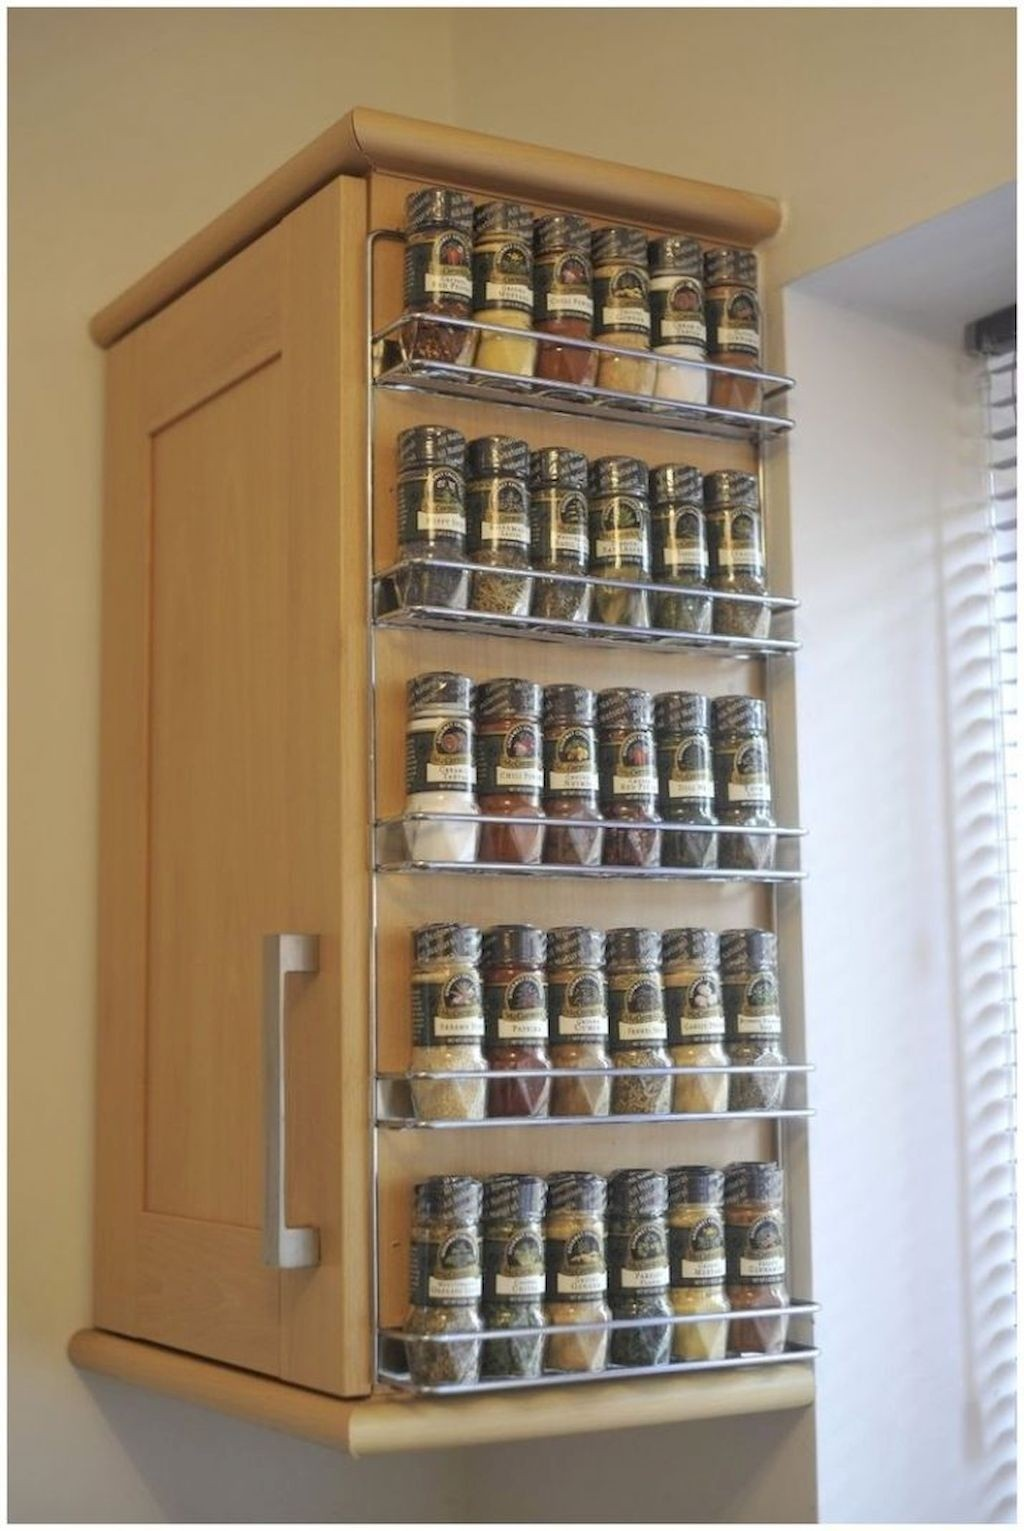 Spice Rack From Brushed Nickel On Corner Wall Mount Cabinet .